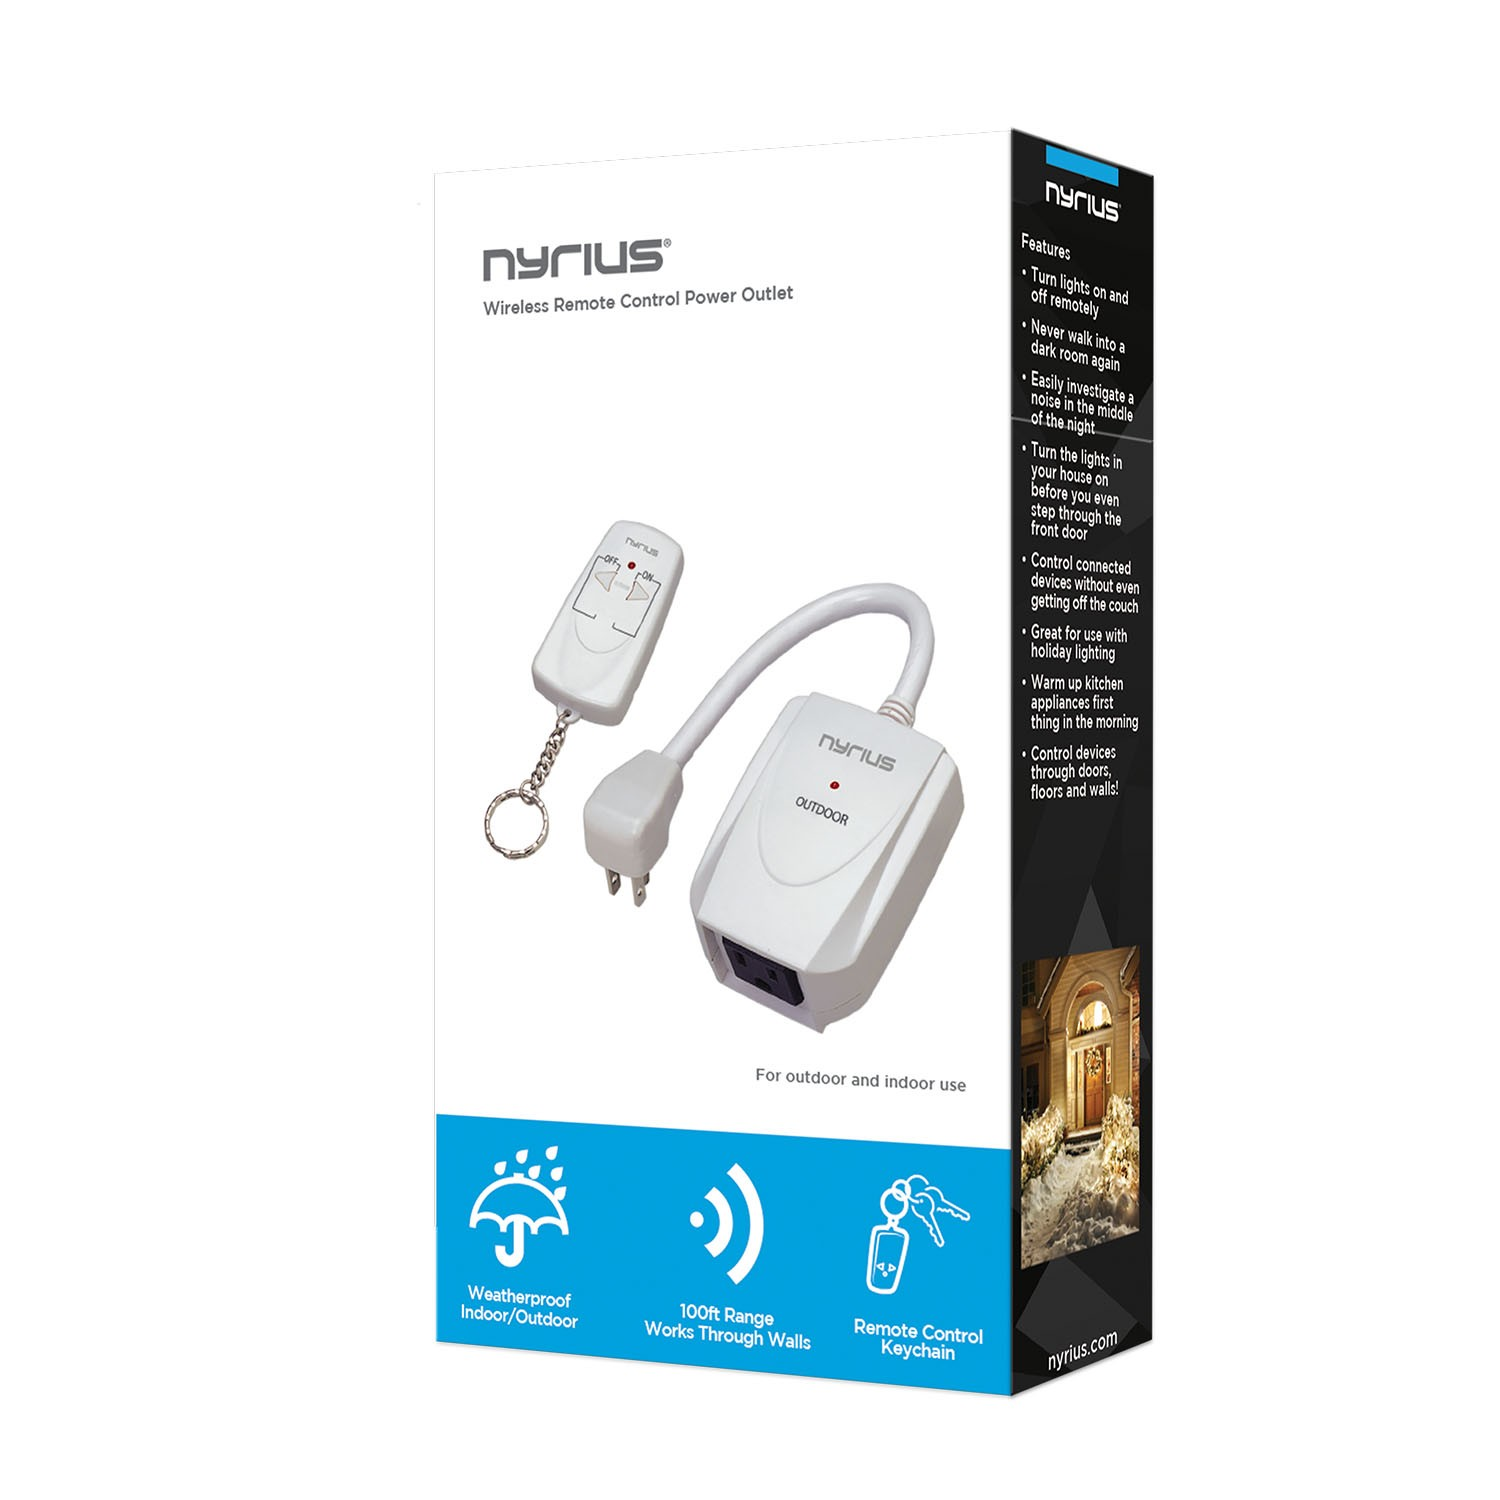 Remote Control Switch For Indoor And Outdoor Power Outlet Nyrius In The Same Box Previous